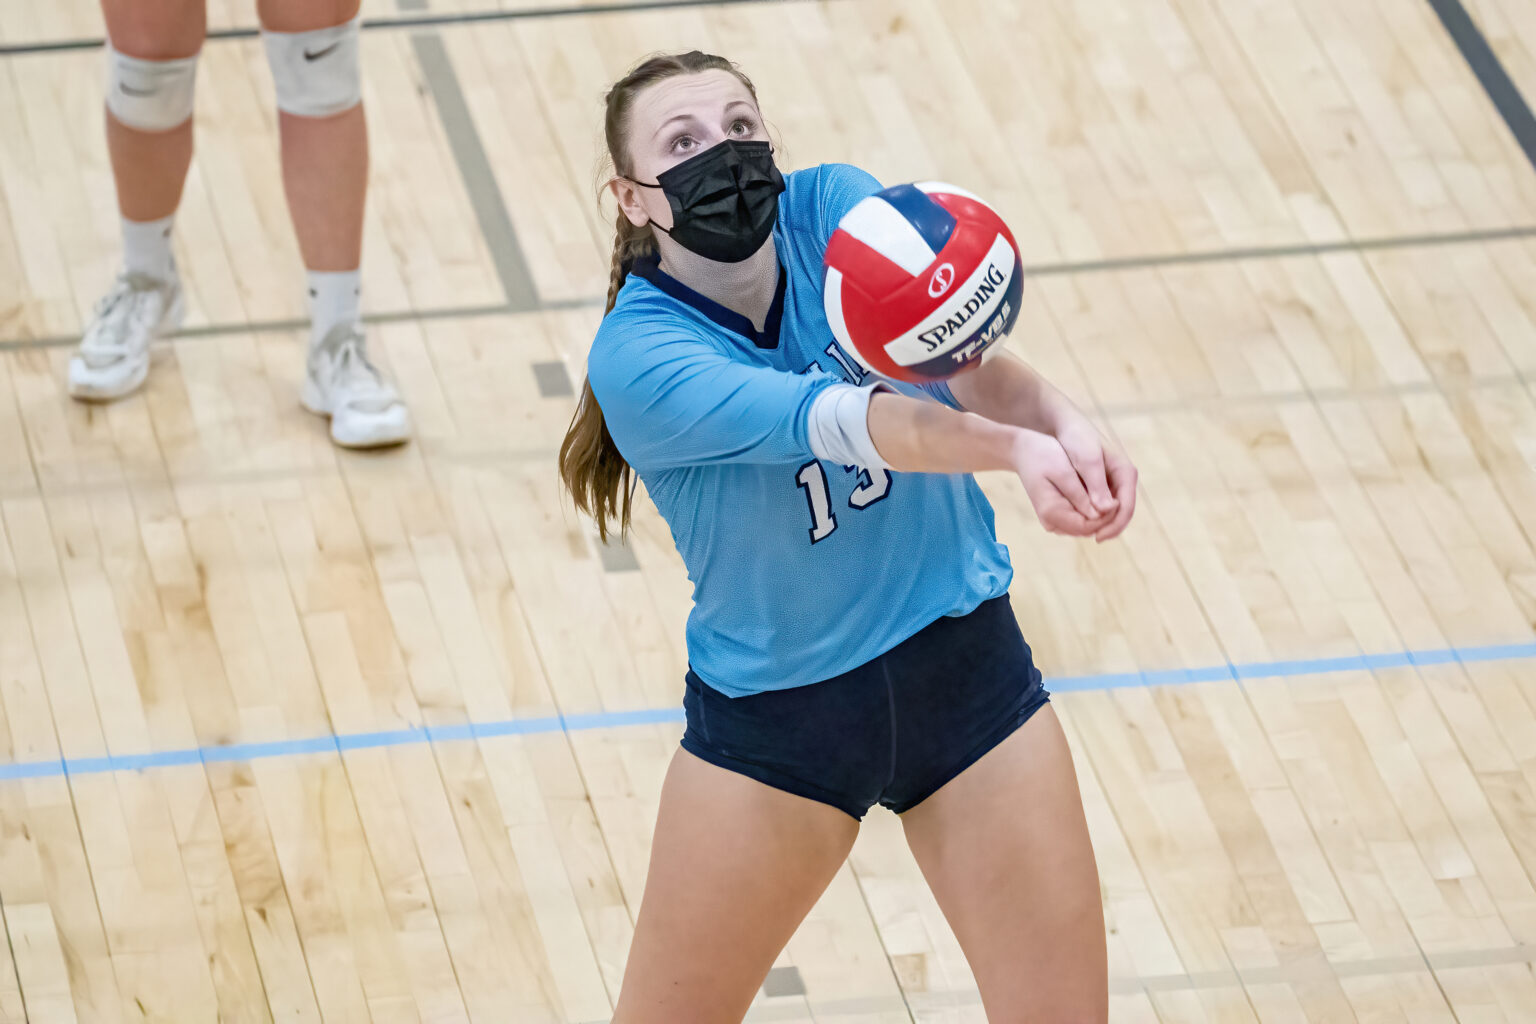 Franklin's Cailyn Mackintosh will be on the top players in the Hock this season. (Ryan Lanigan/HockomockSports.com)